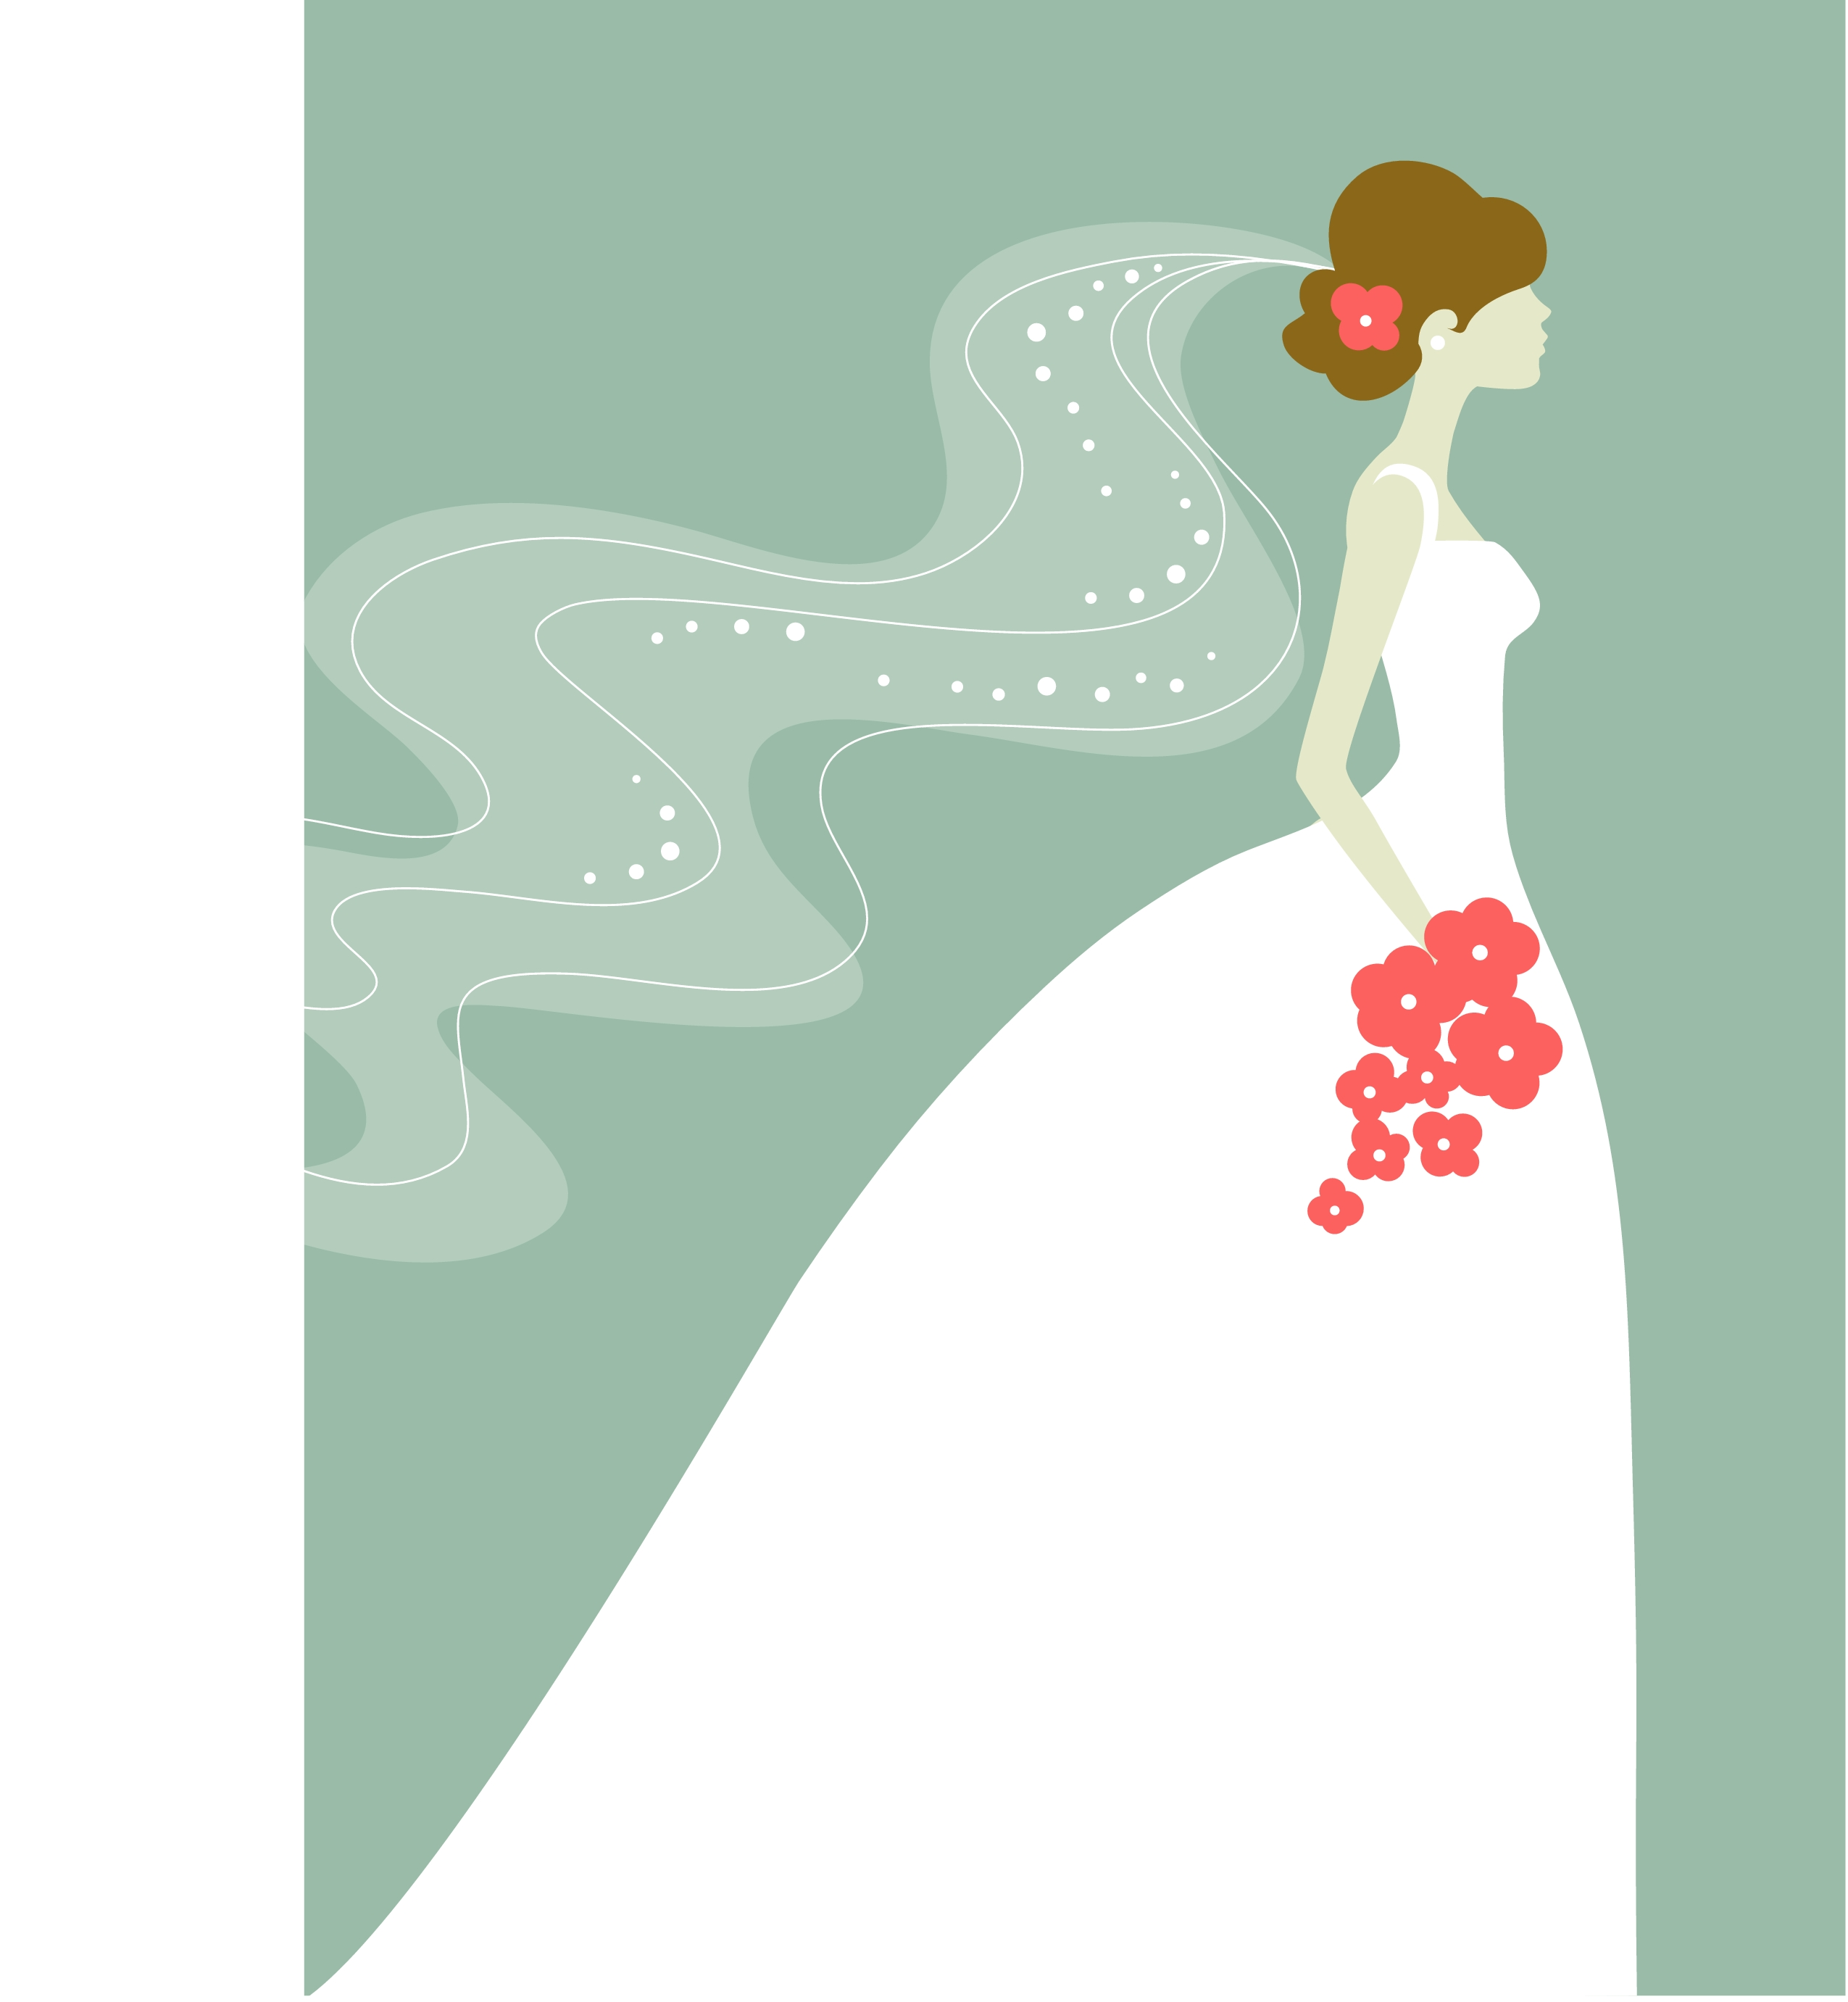 Bridal shower silhouette clip art.